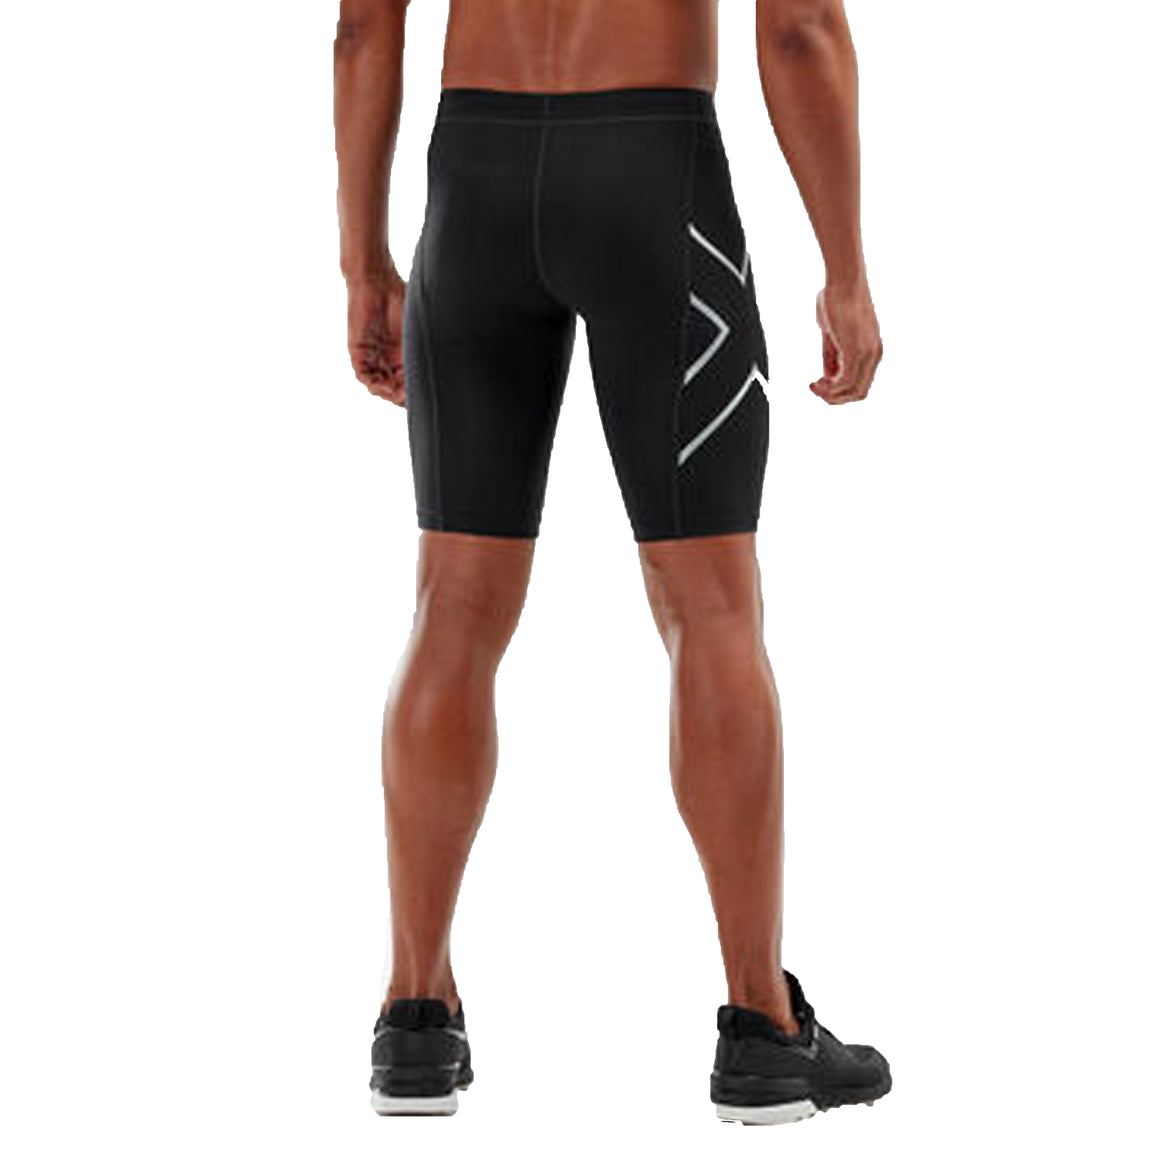 Compression Shorts for Men in Black